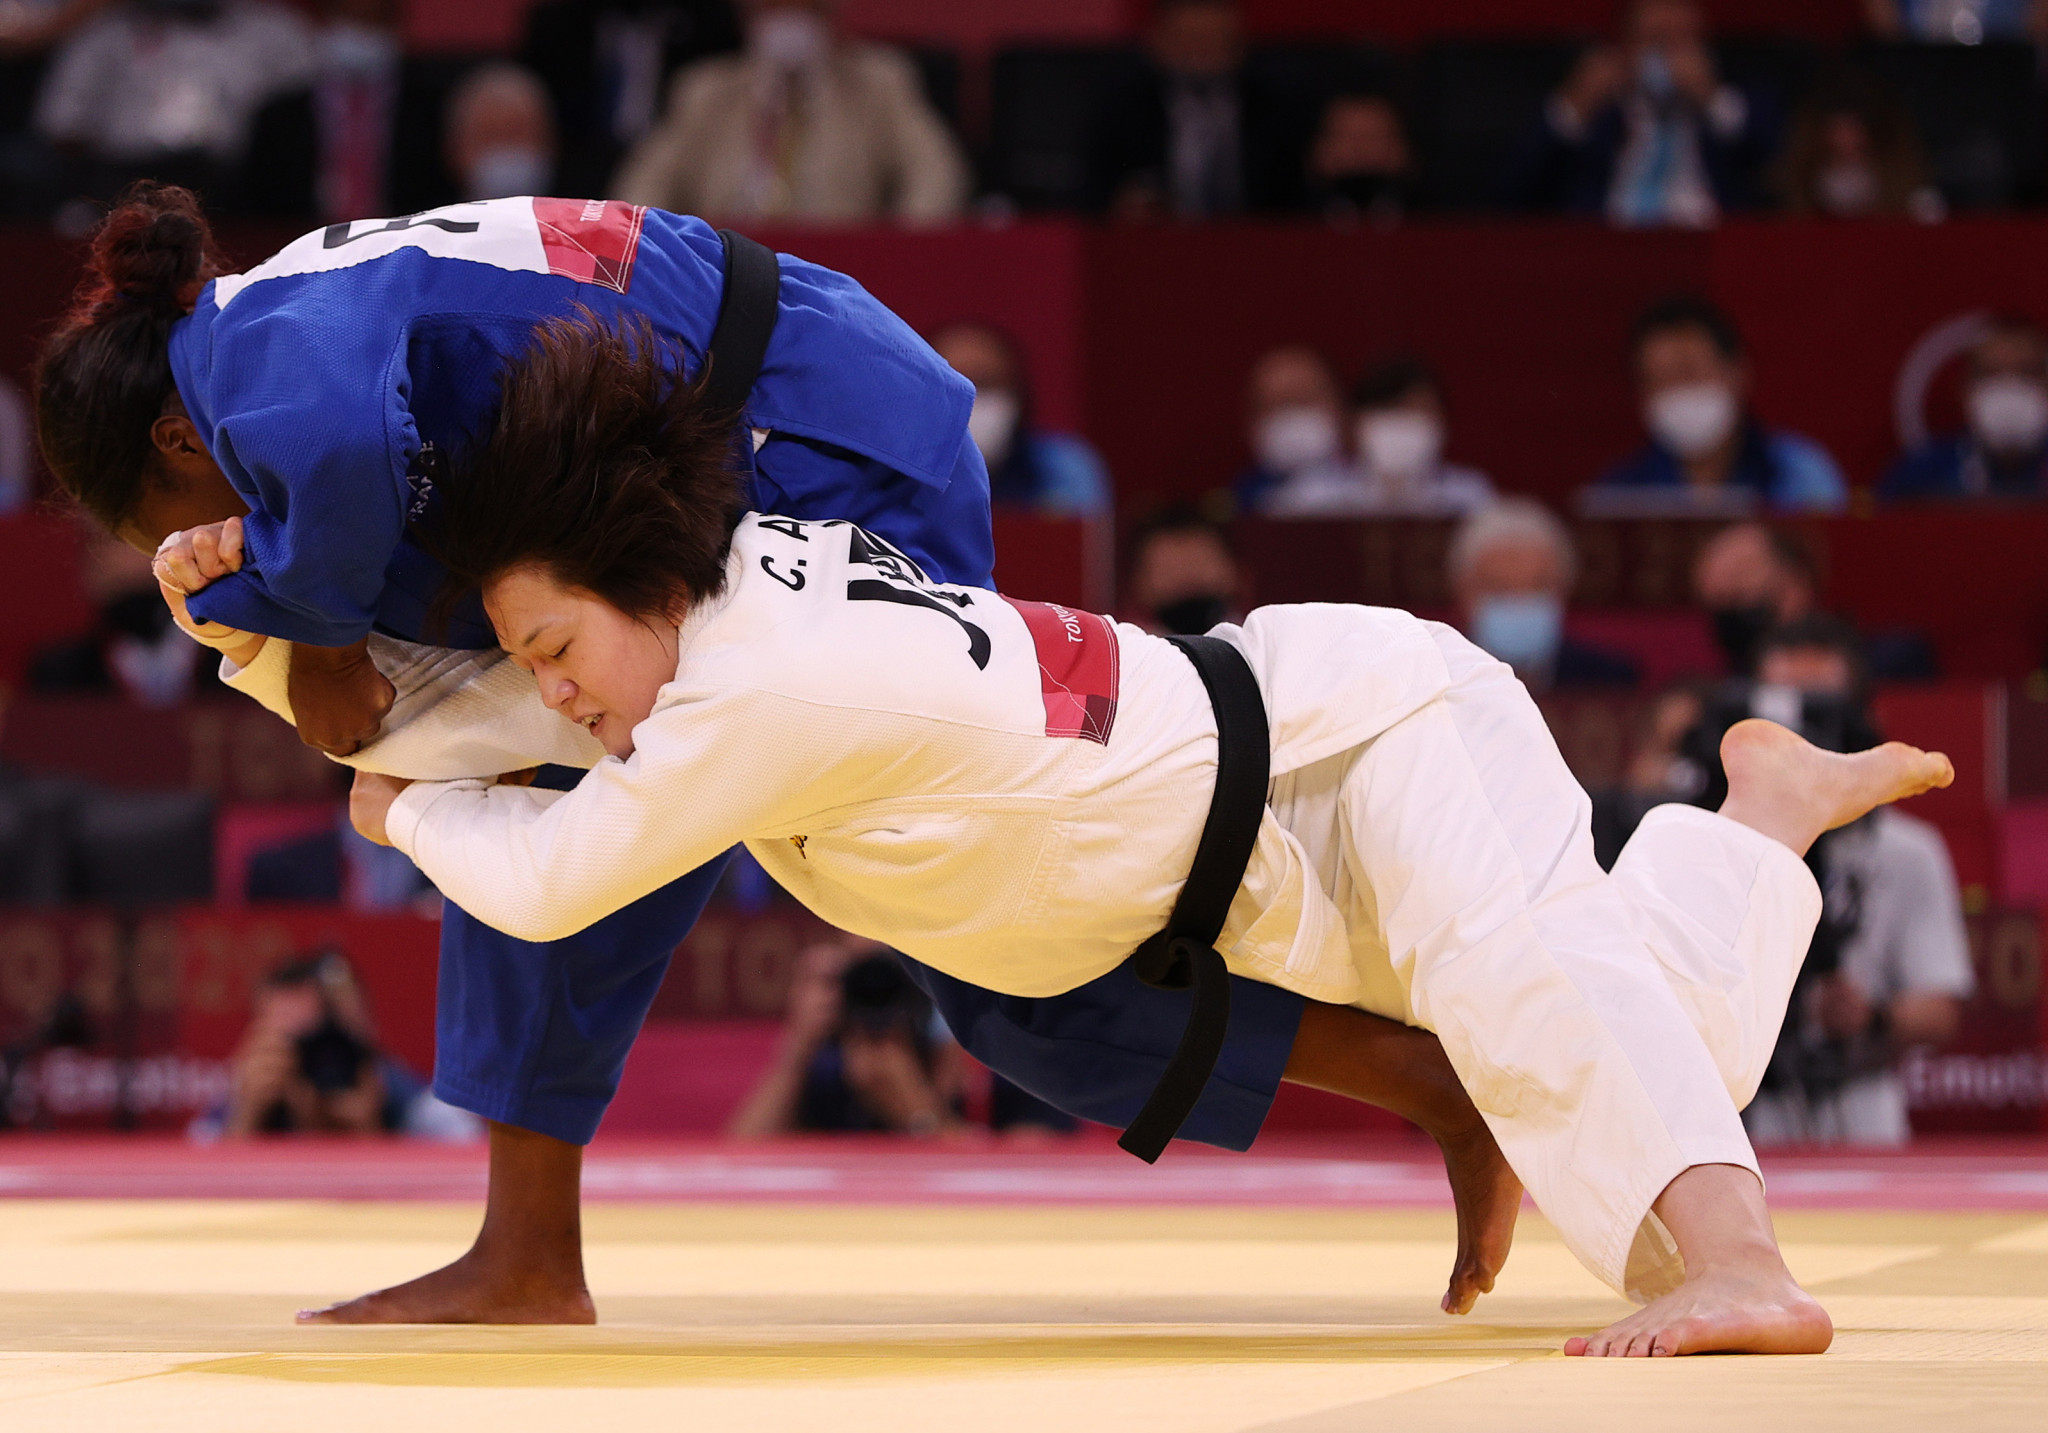 Clarisse Agbegnenou of France, pictured in blue, was among the French judoka to win in the mixed team event ©Getty Images